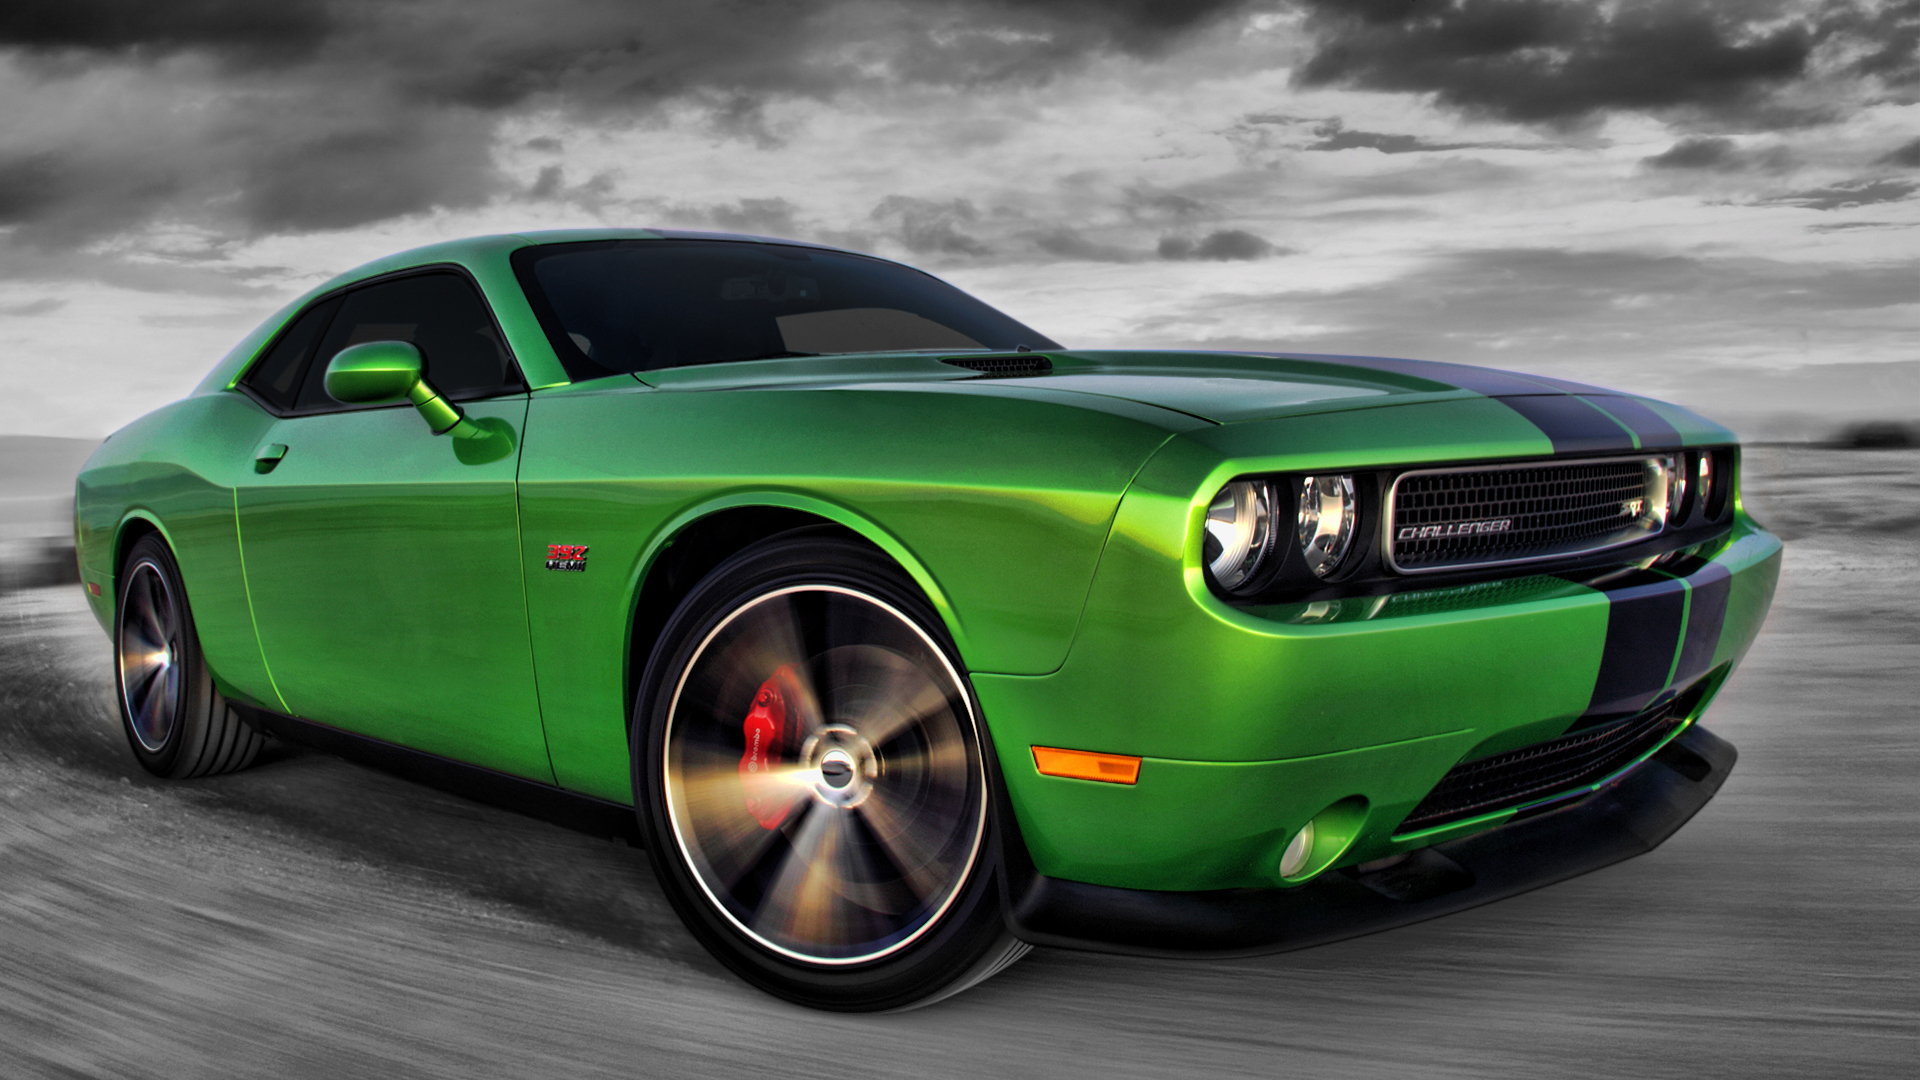 2011 Dodge Challenger SRT8 Wallpaper 1920x1080